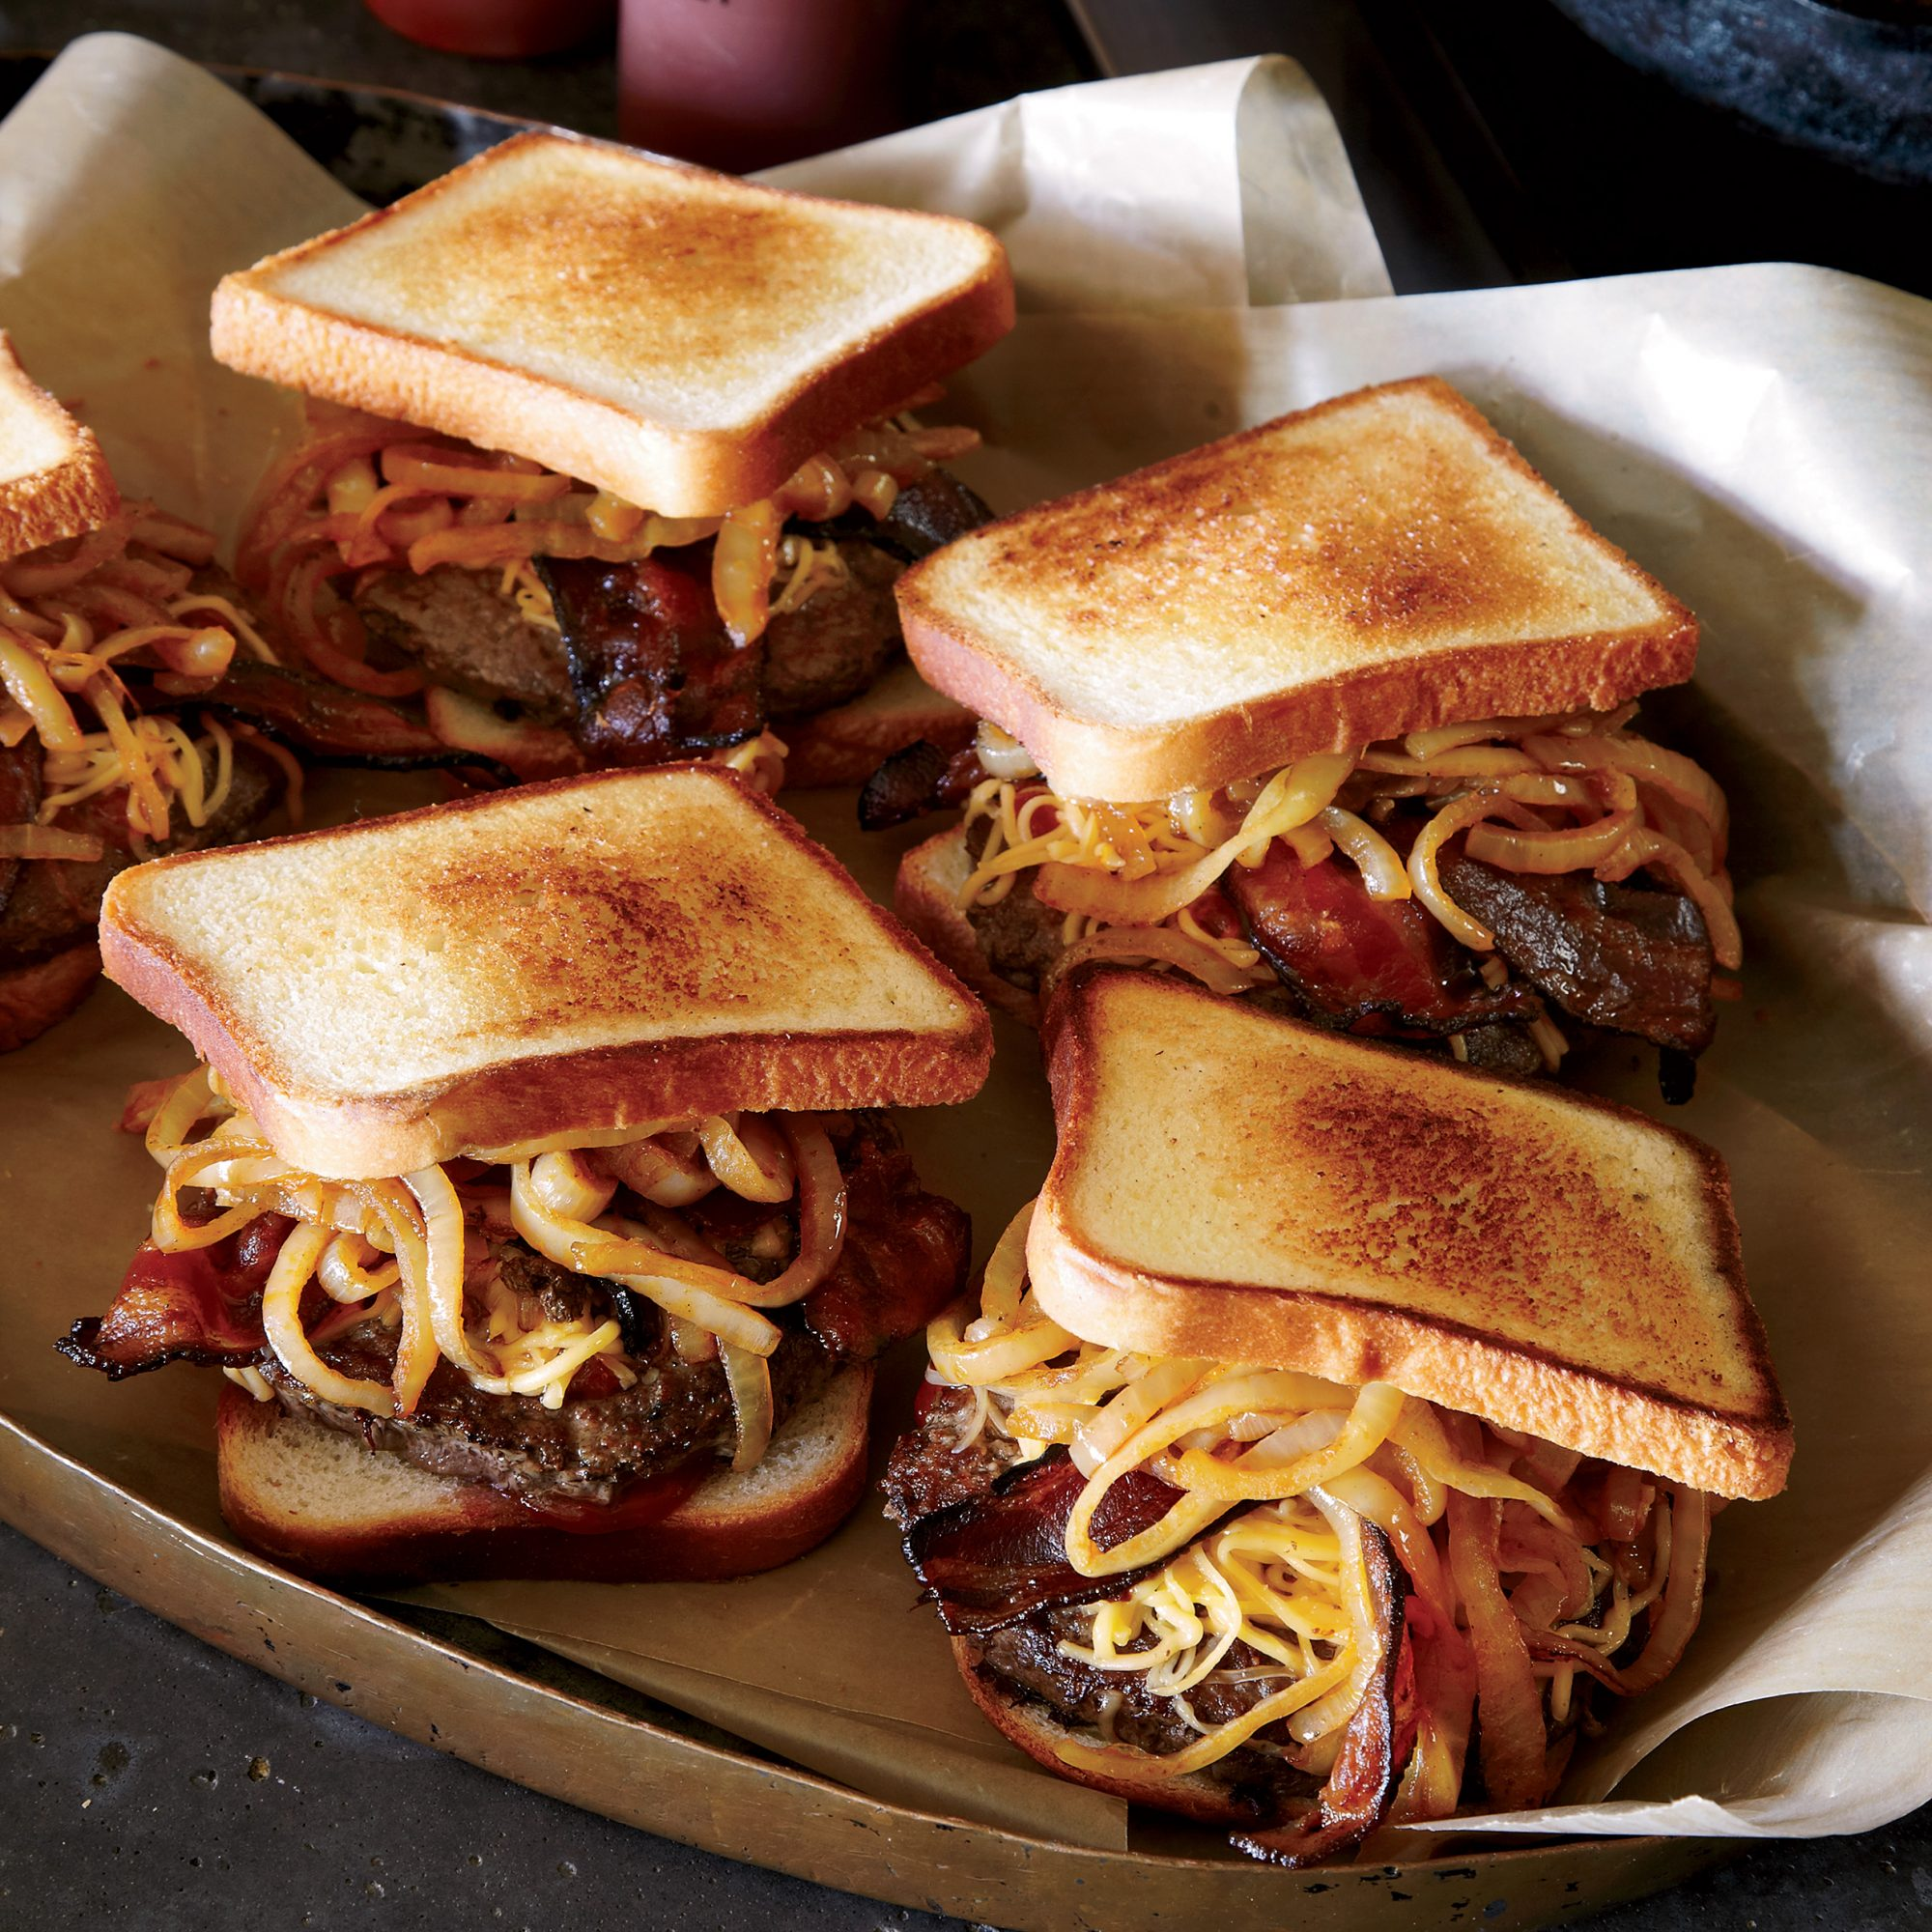 200x250-201206-r-smoked-gouda-and-bacon-burgers-with-barbecue-sauce.jpg